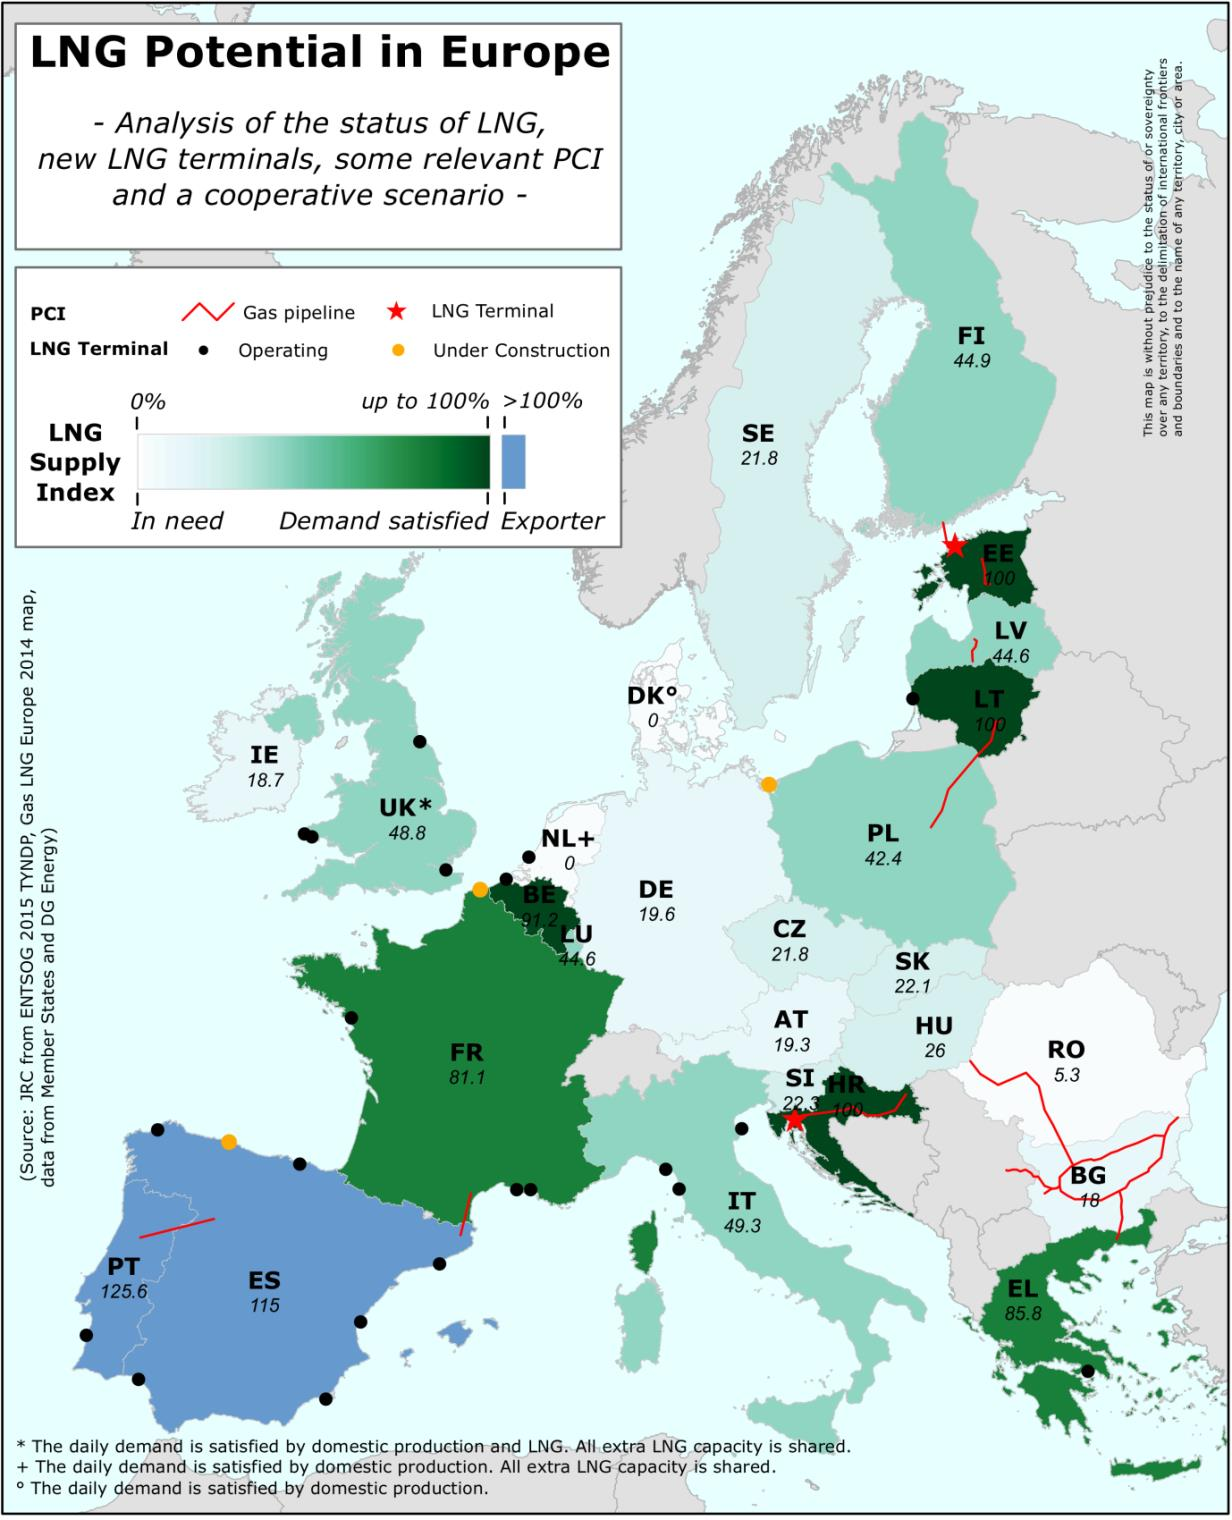 Eur lex 52016sc0023 en eur lex figure 8 potential penetration of lng after completion of relevant pcis and with cooperation between countries 35 of demand is covered for member states gumiabroncs Choice Image